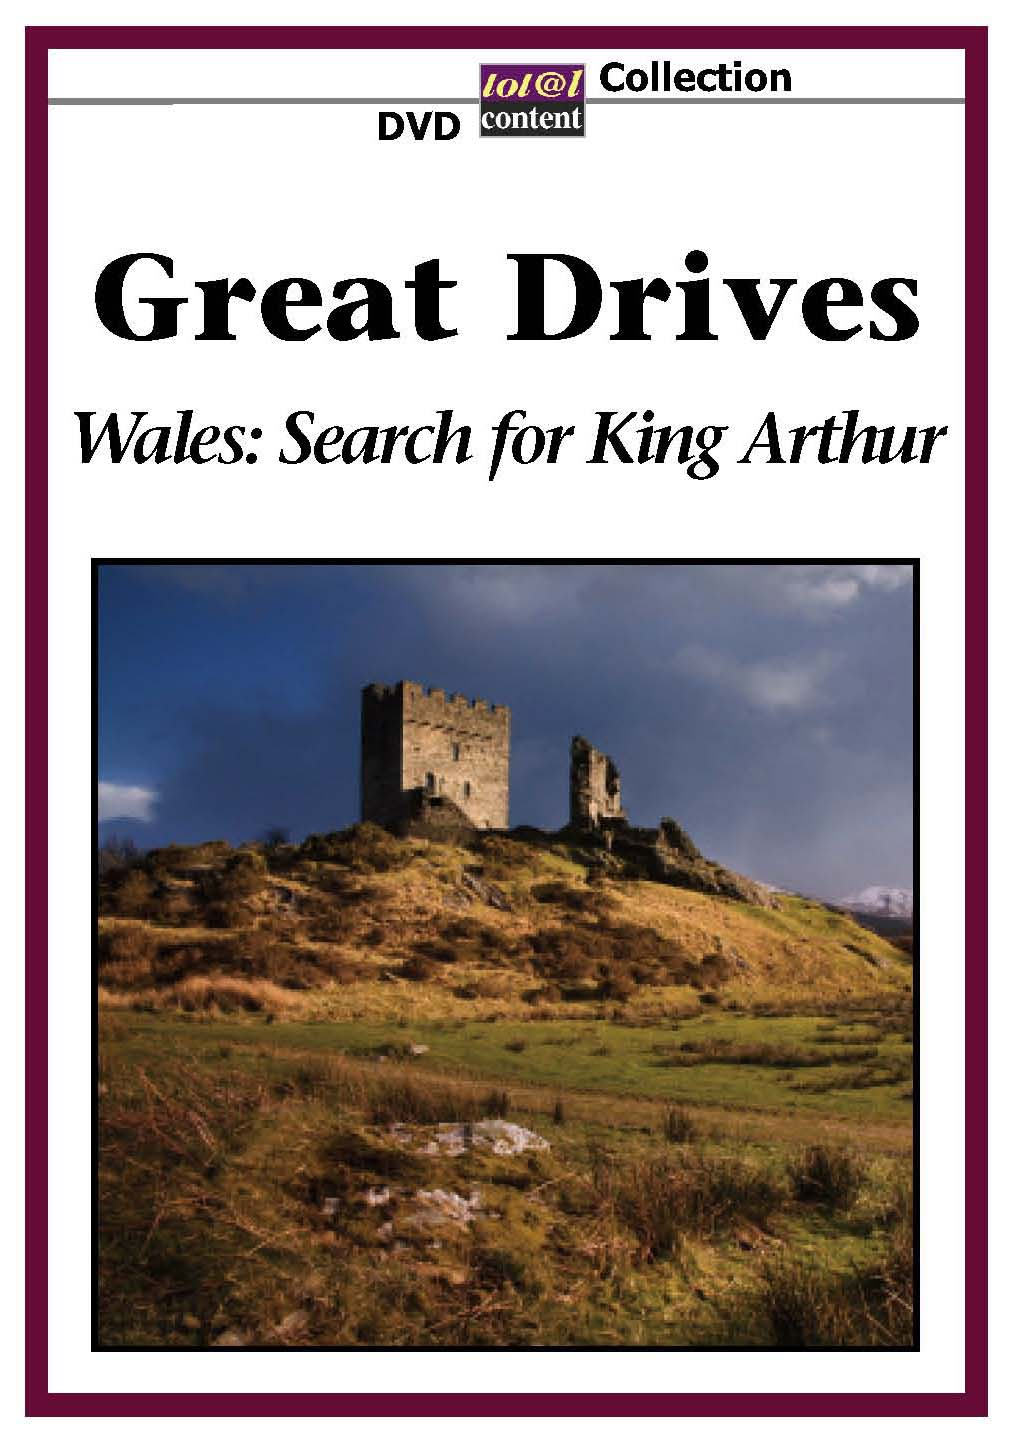 Great Drives: Wales - Search for King Arthur